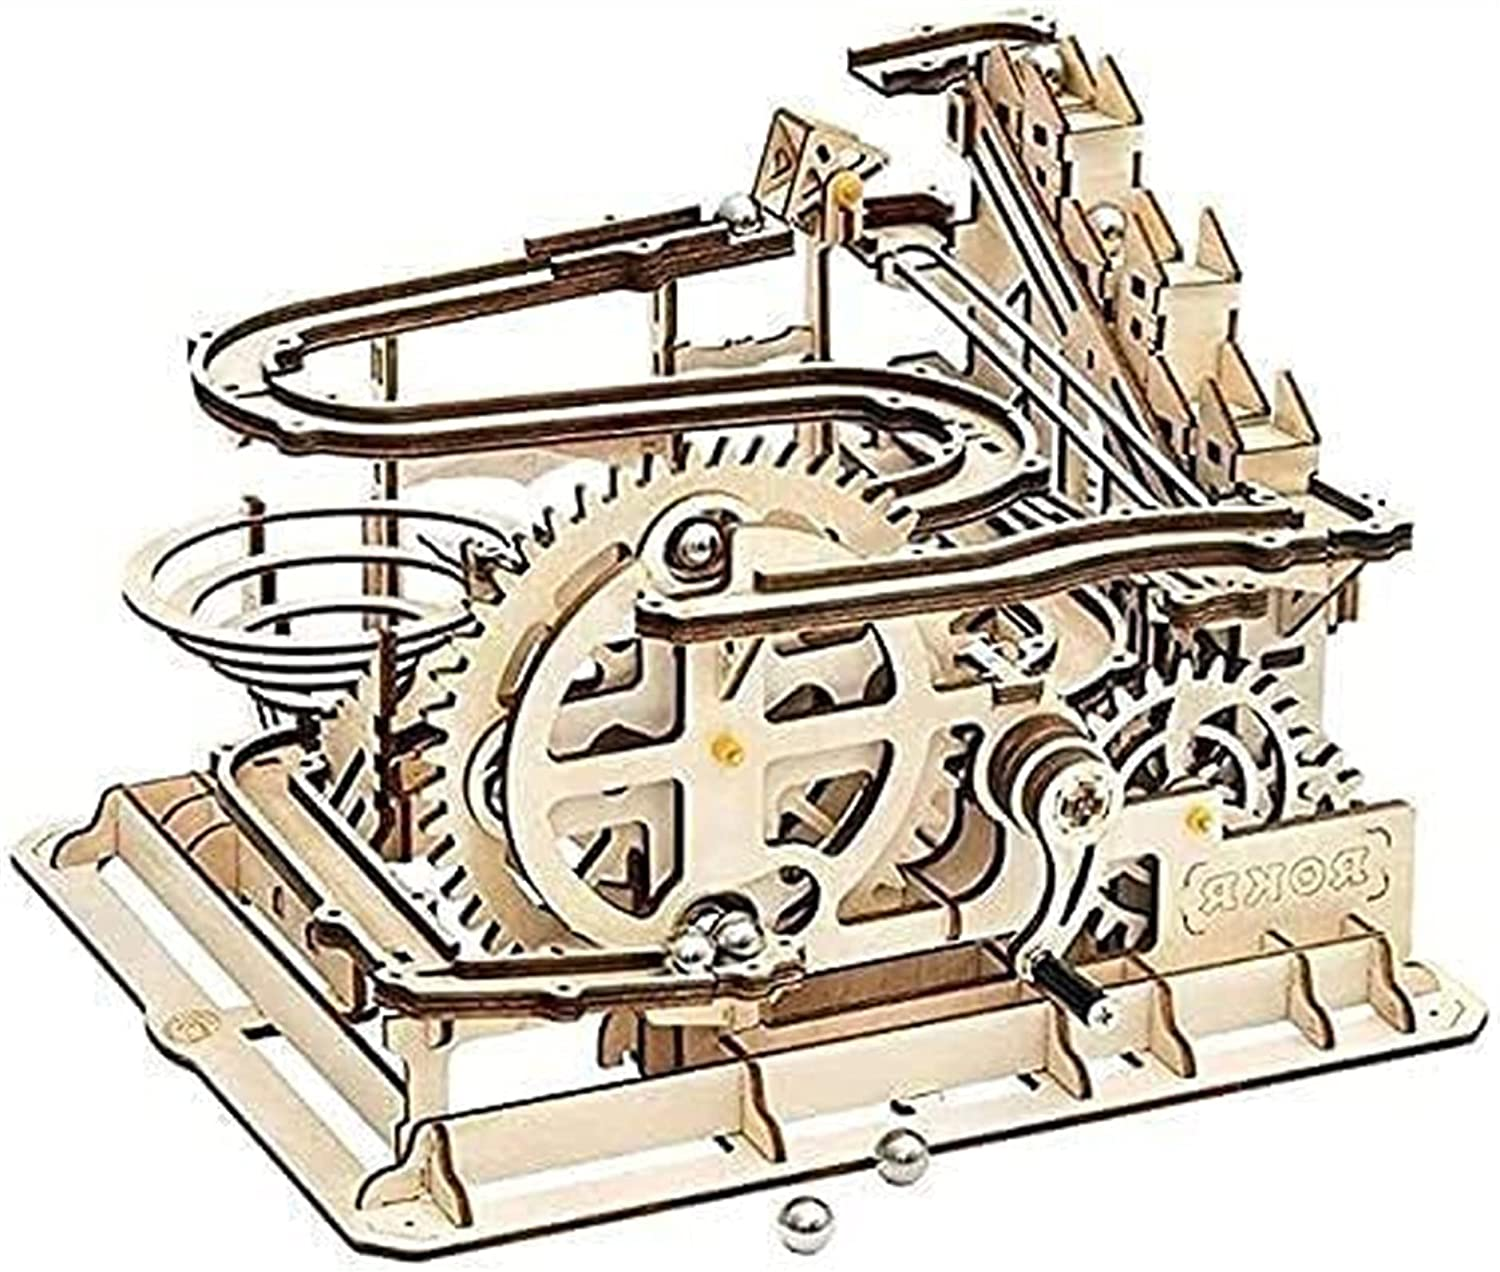 3D Wooden Marble Run Puzzle Surprise price Craft Bo Teen Toy Adults for Luxury Gift